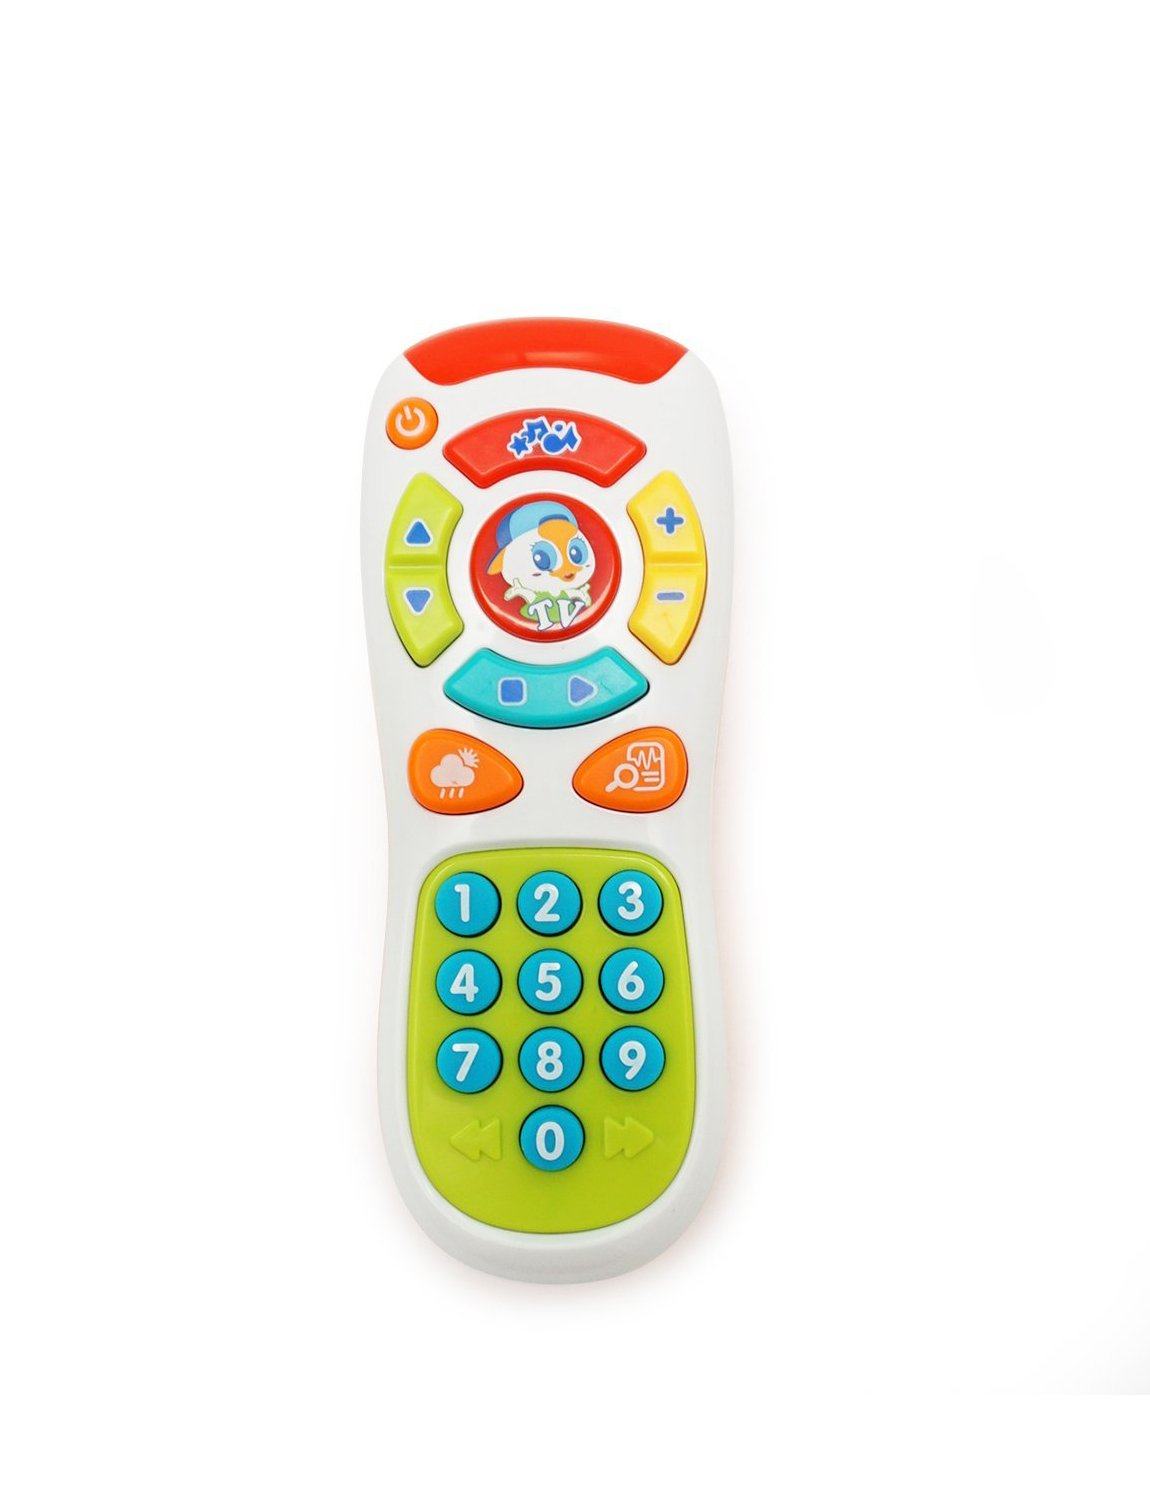 KONIG KIDS Click & Learn Remote Educational Toy Baby 6 Months +